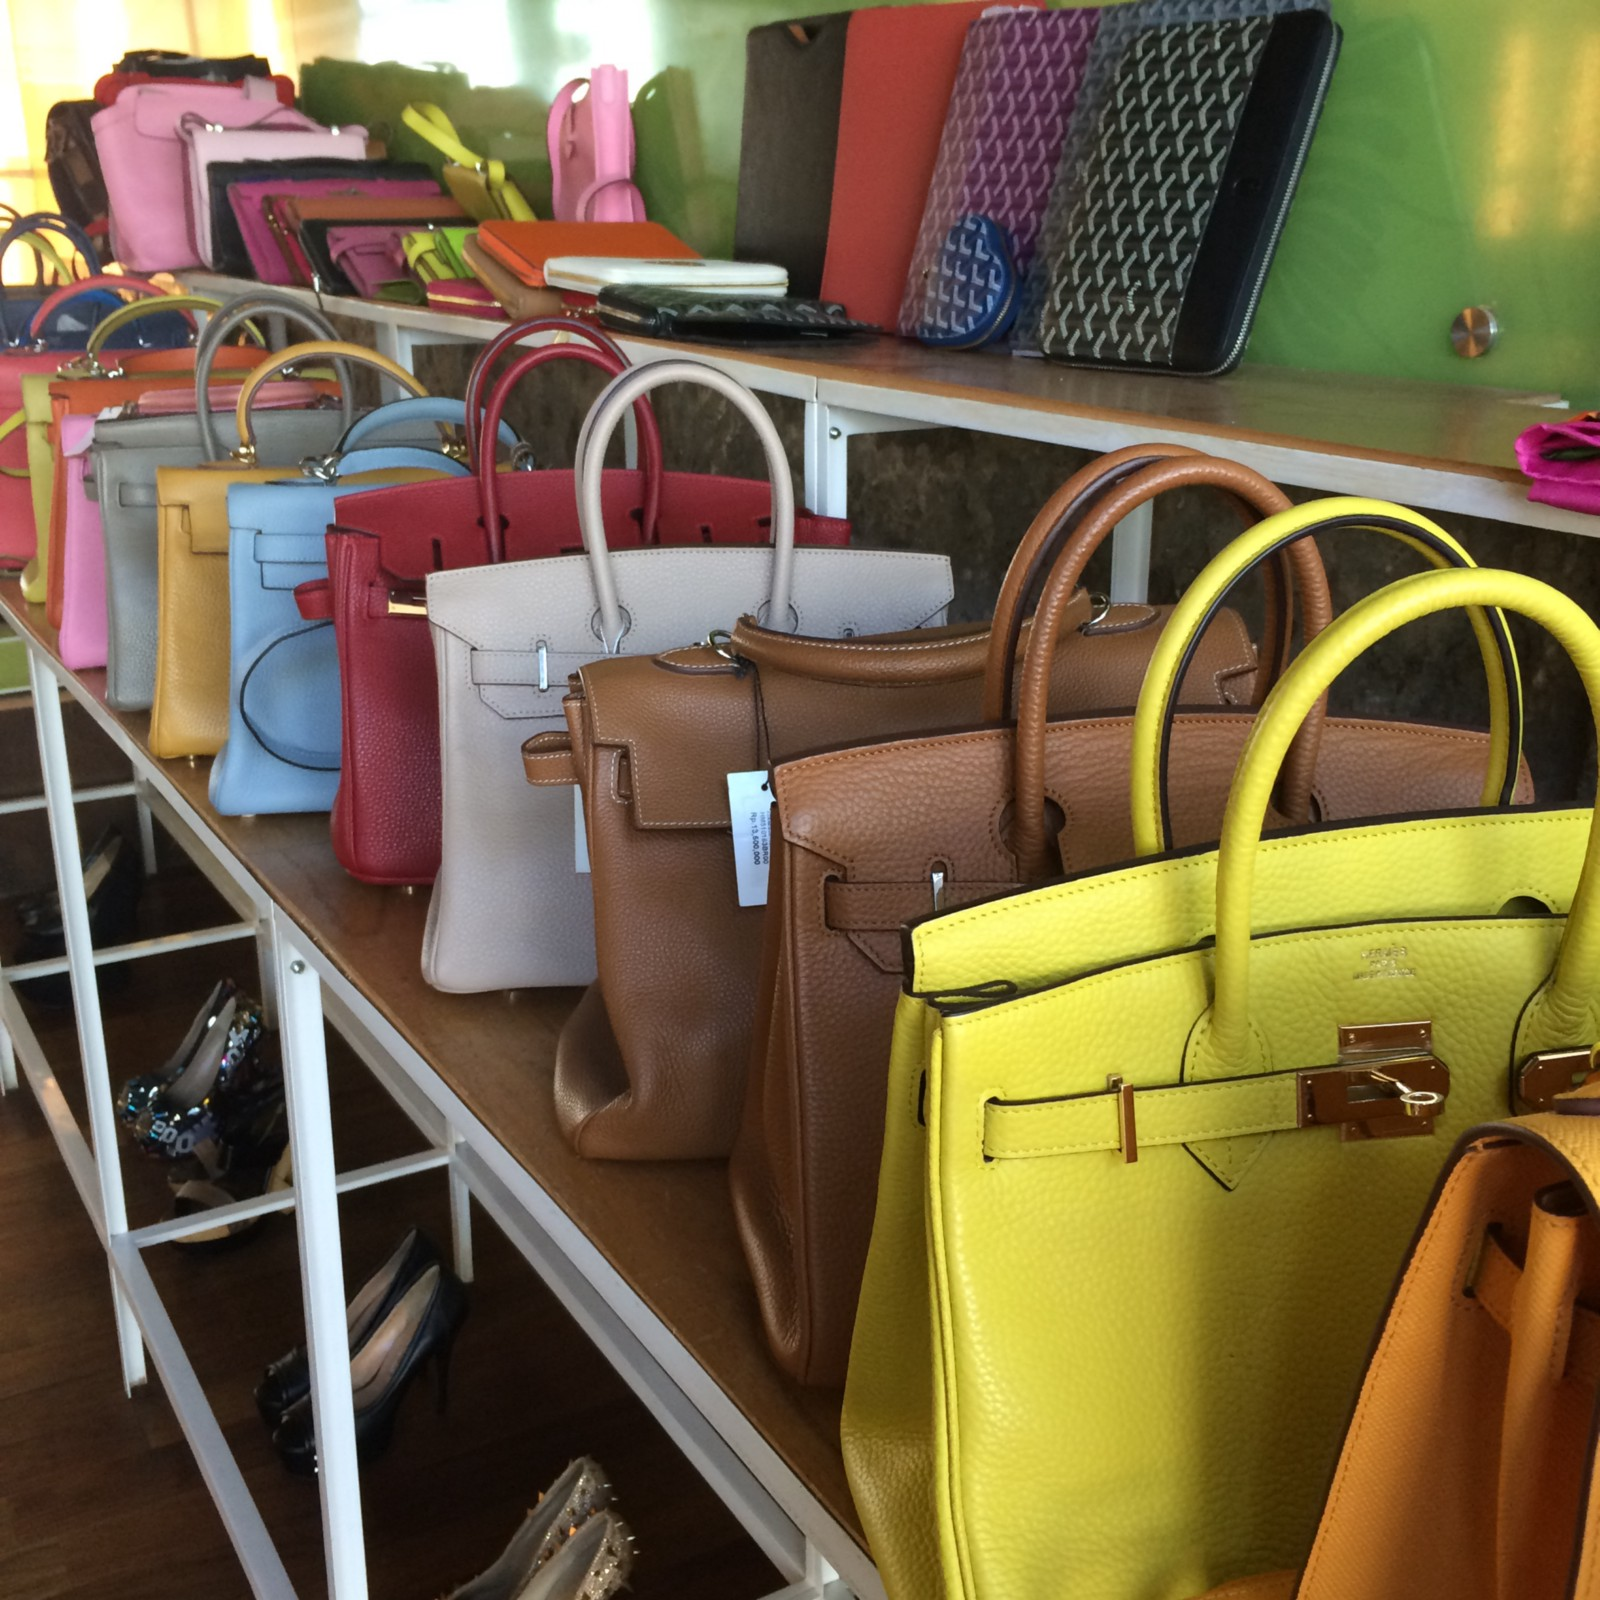 c851d6a4f8 The Truth About Counterfeit Luxury Handbags – Becca Risa Luna – Medium